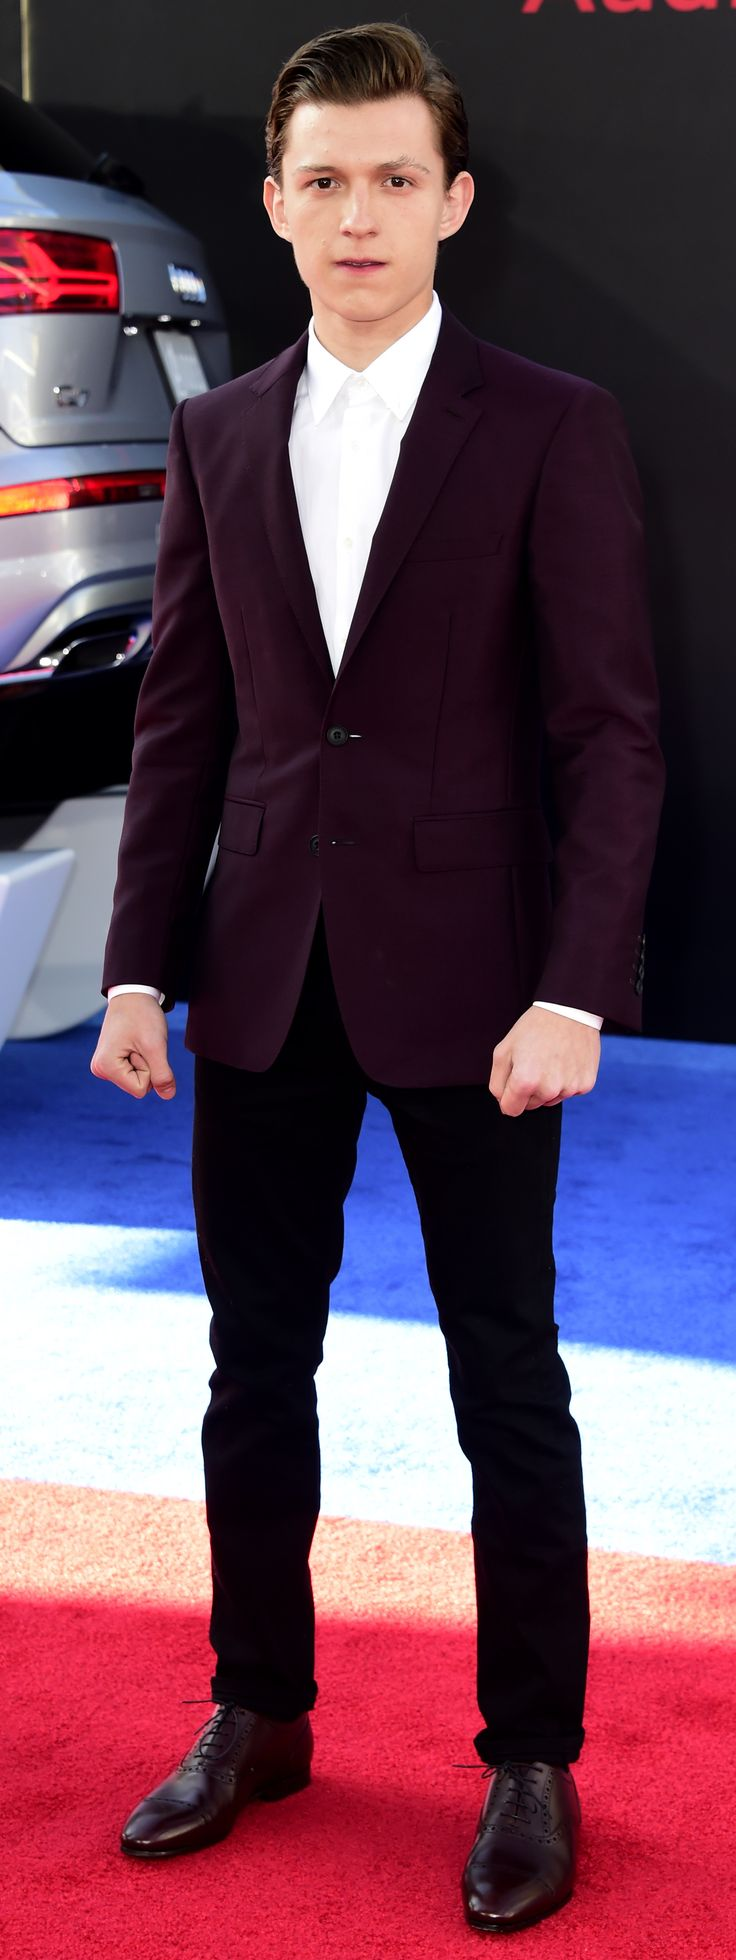 British actor Tom Holland on the red carpet at the Captain